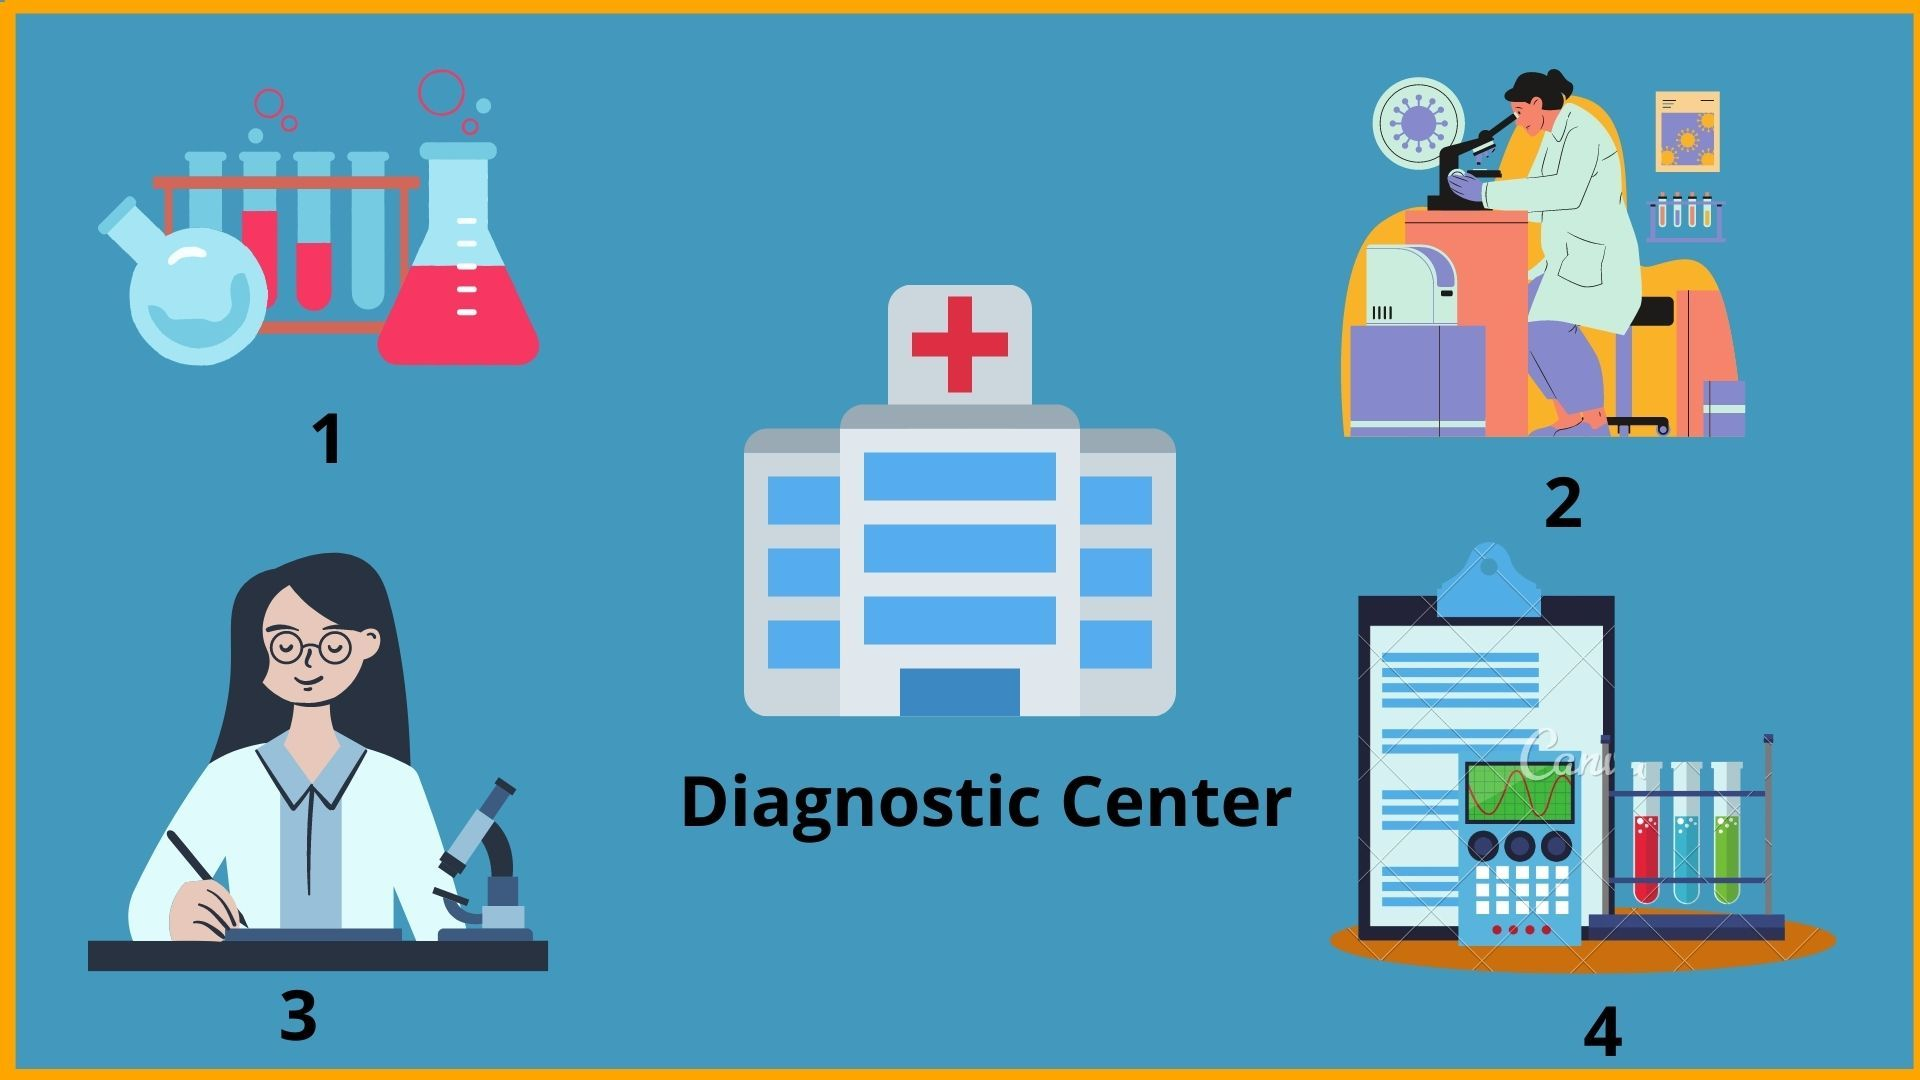 Diagnostic center and work process